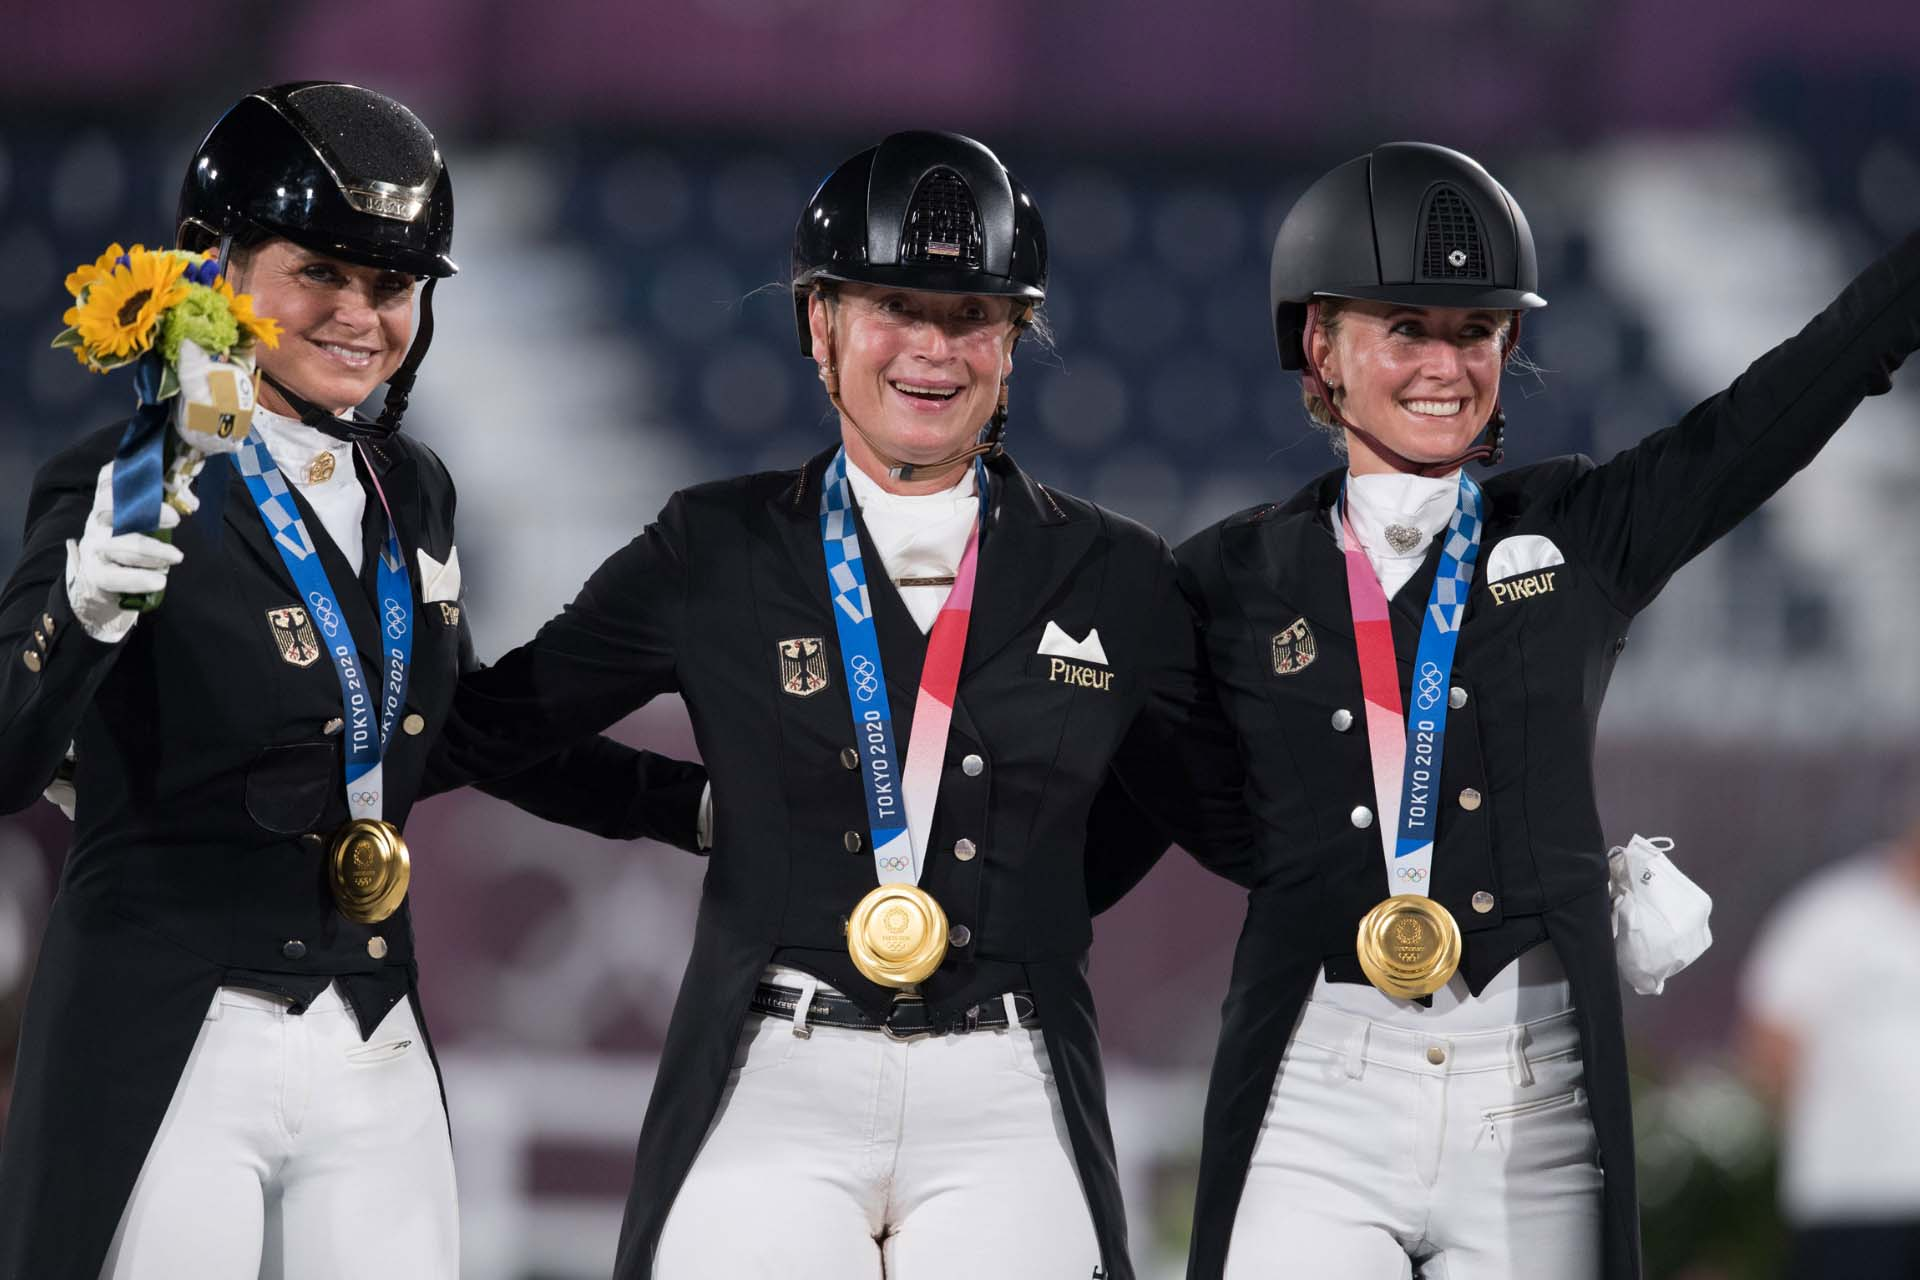 Equine sports at 2021 Tokyo Olympics